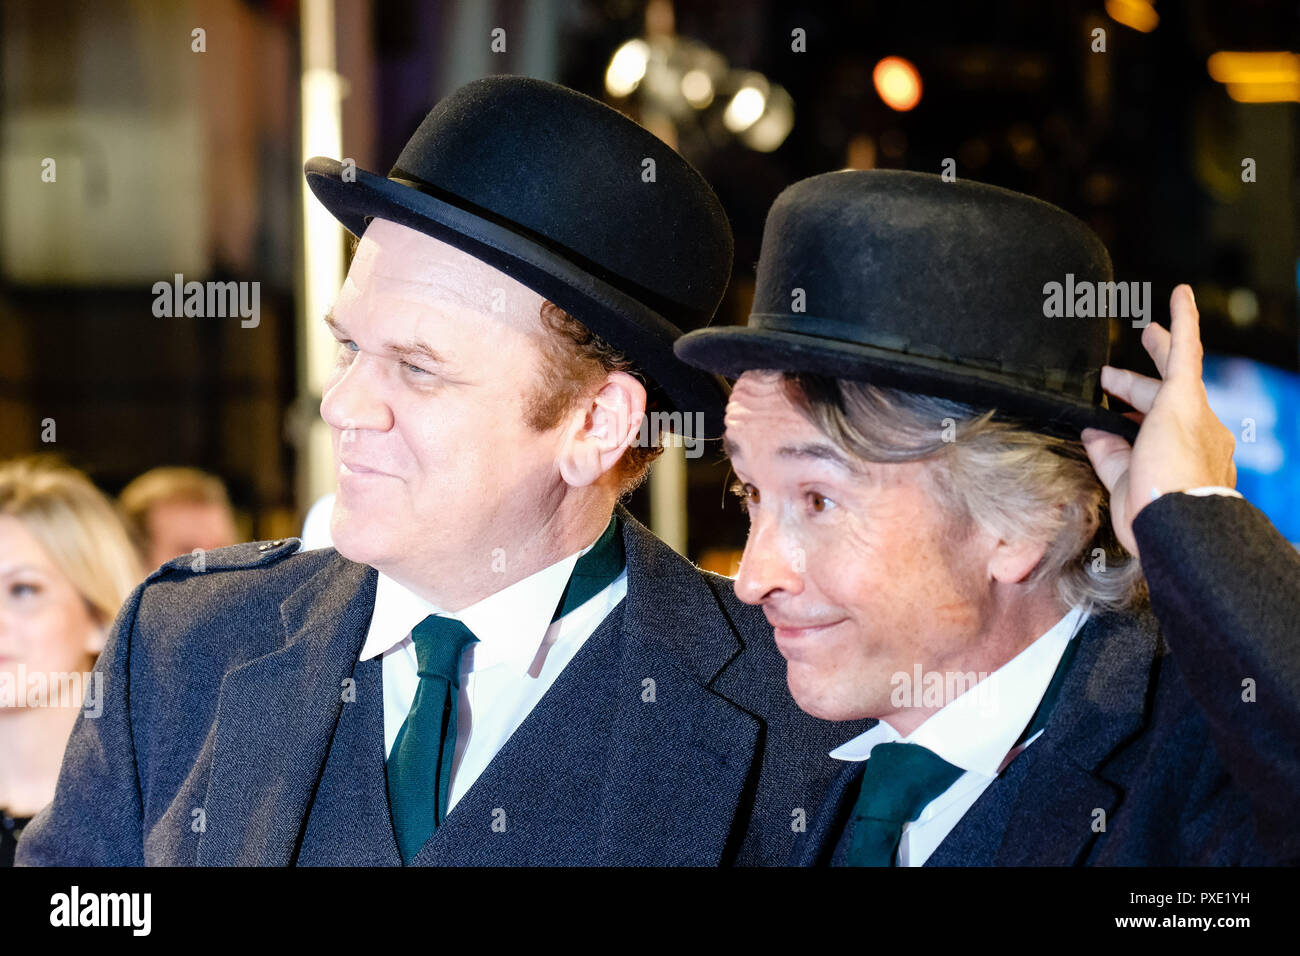 London, UK. 21st Oct 2018. Actors John C. Reilly and Steve Coogan at the London Film Festival Closing Night Gala of STAN AND OLLIE on Sunday 21 October 2018 held at Cineworld Leicester Square, London. Pictured: Steve Coogan, John C. Reilly , as Laurel and Hardy. Picture by Julie Edwards. Credit: Julie Edwards/Alamy Live News - Stock Image